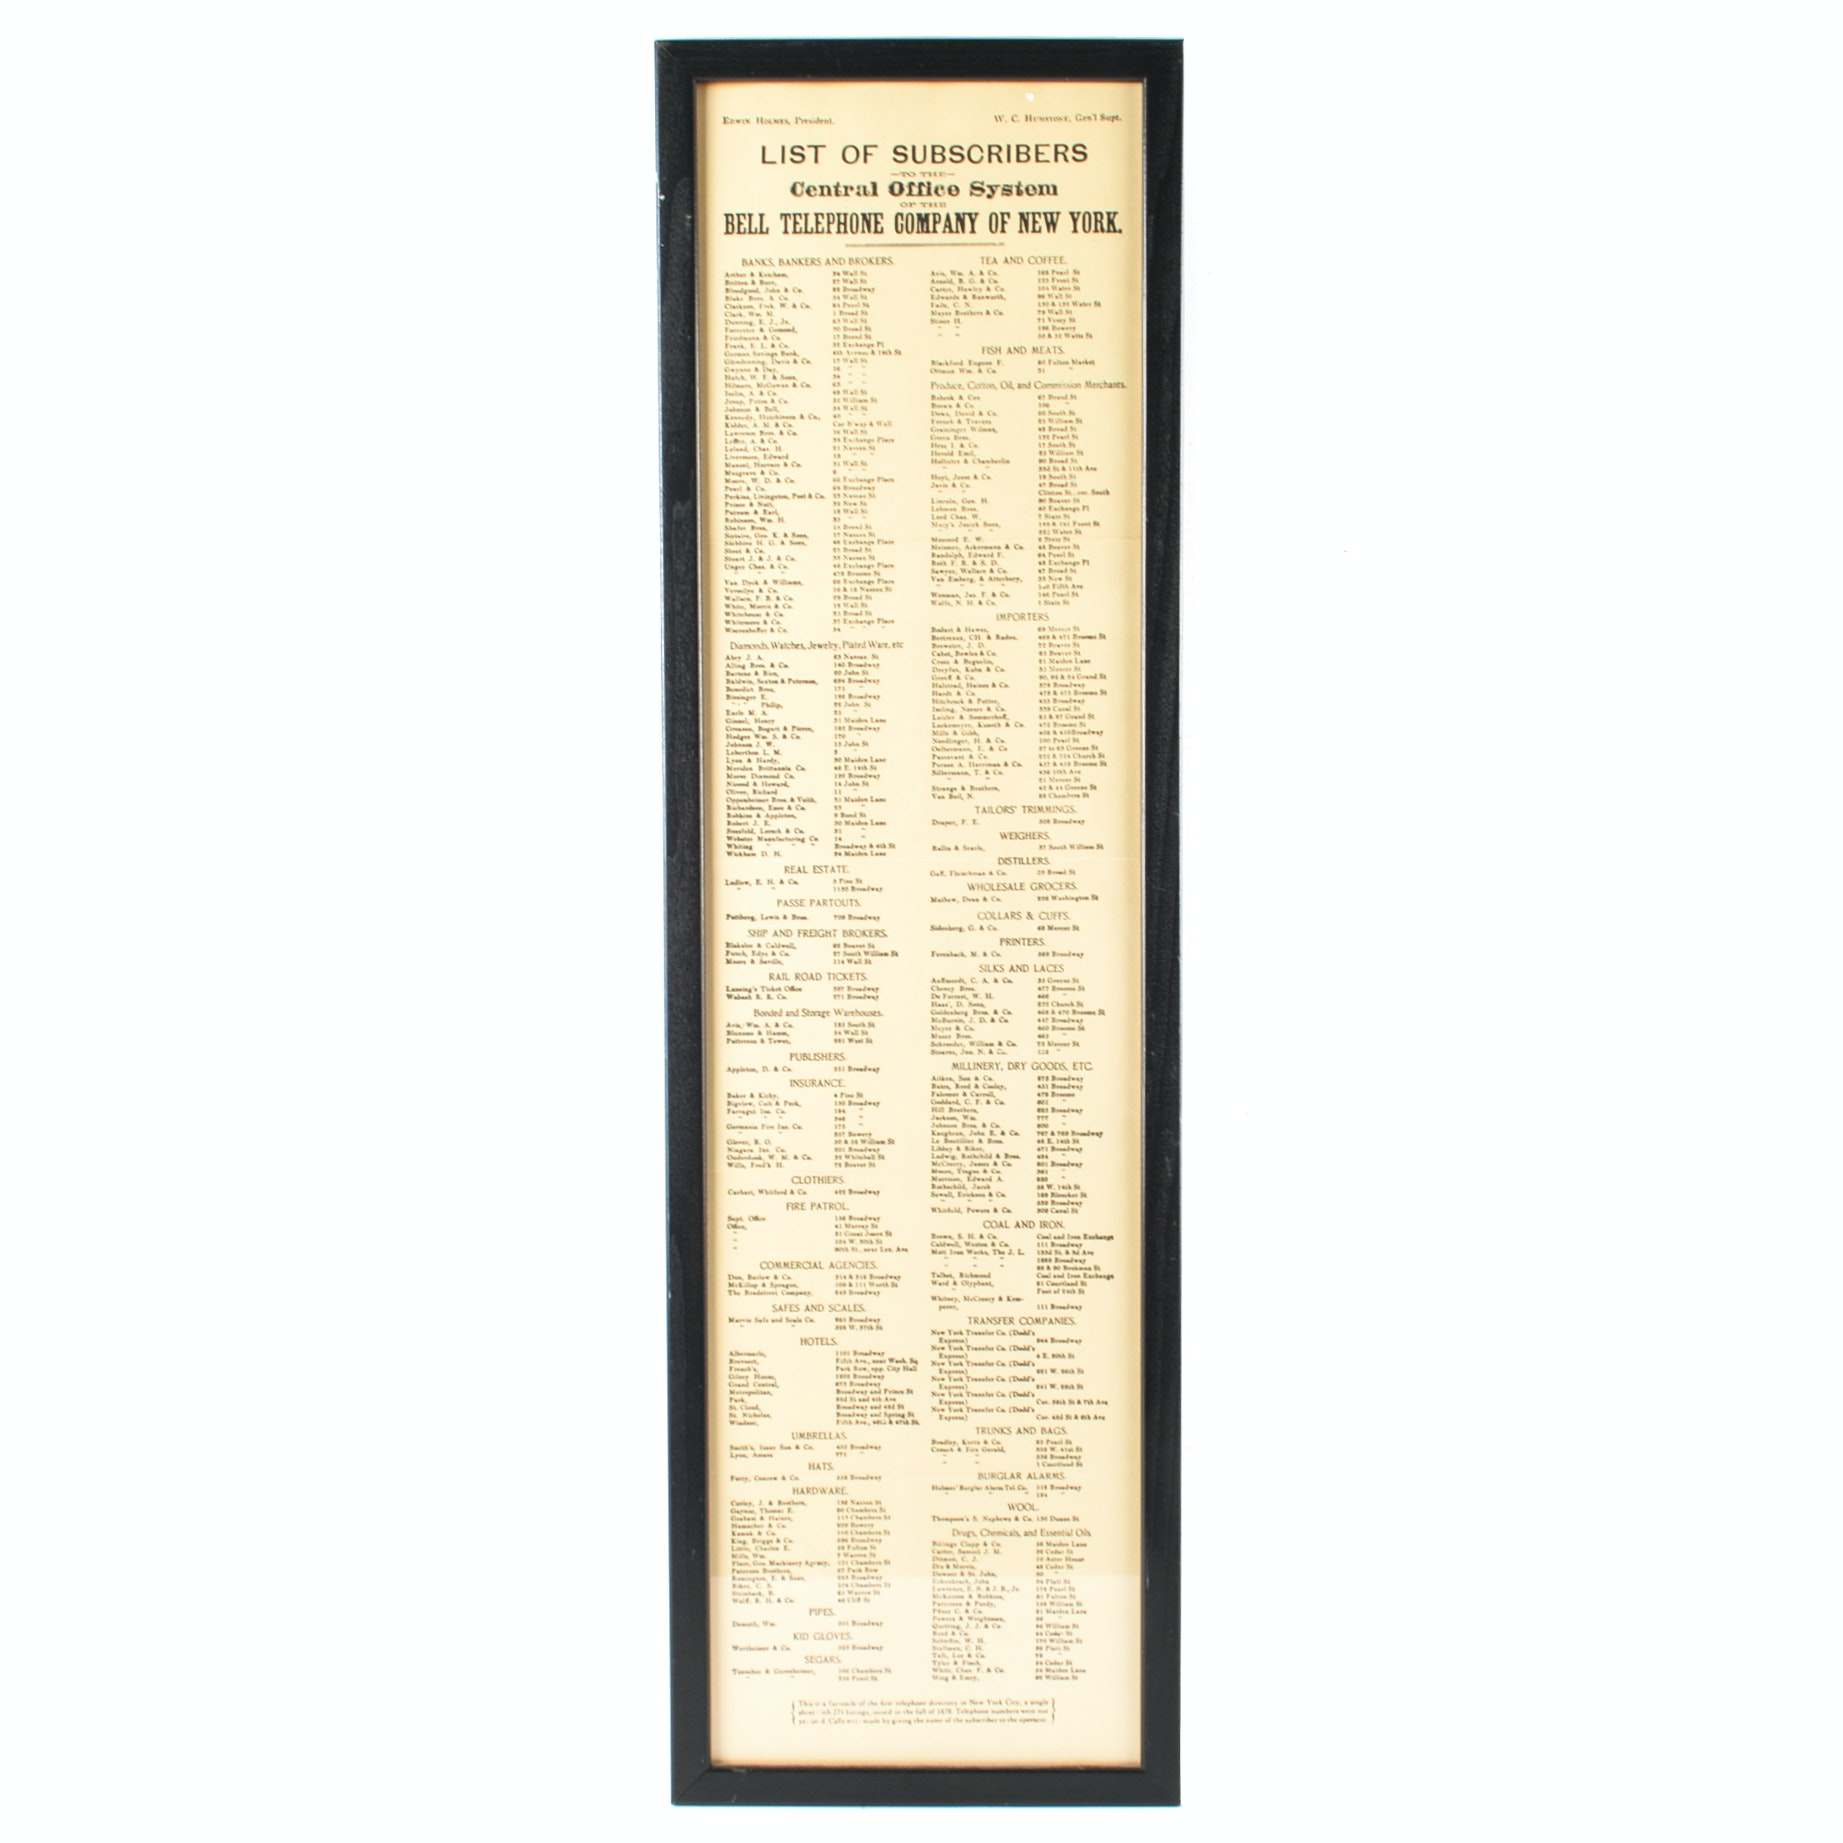 Framed Reproduction of Late 1800s New York City Telephone Directory